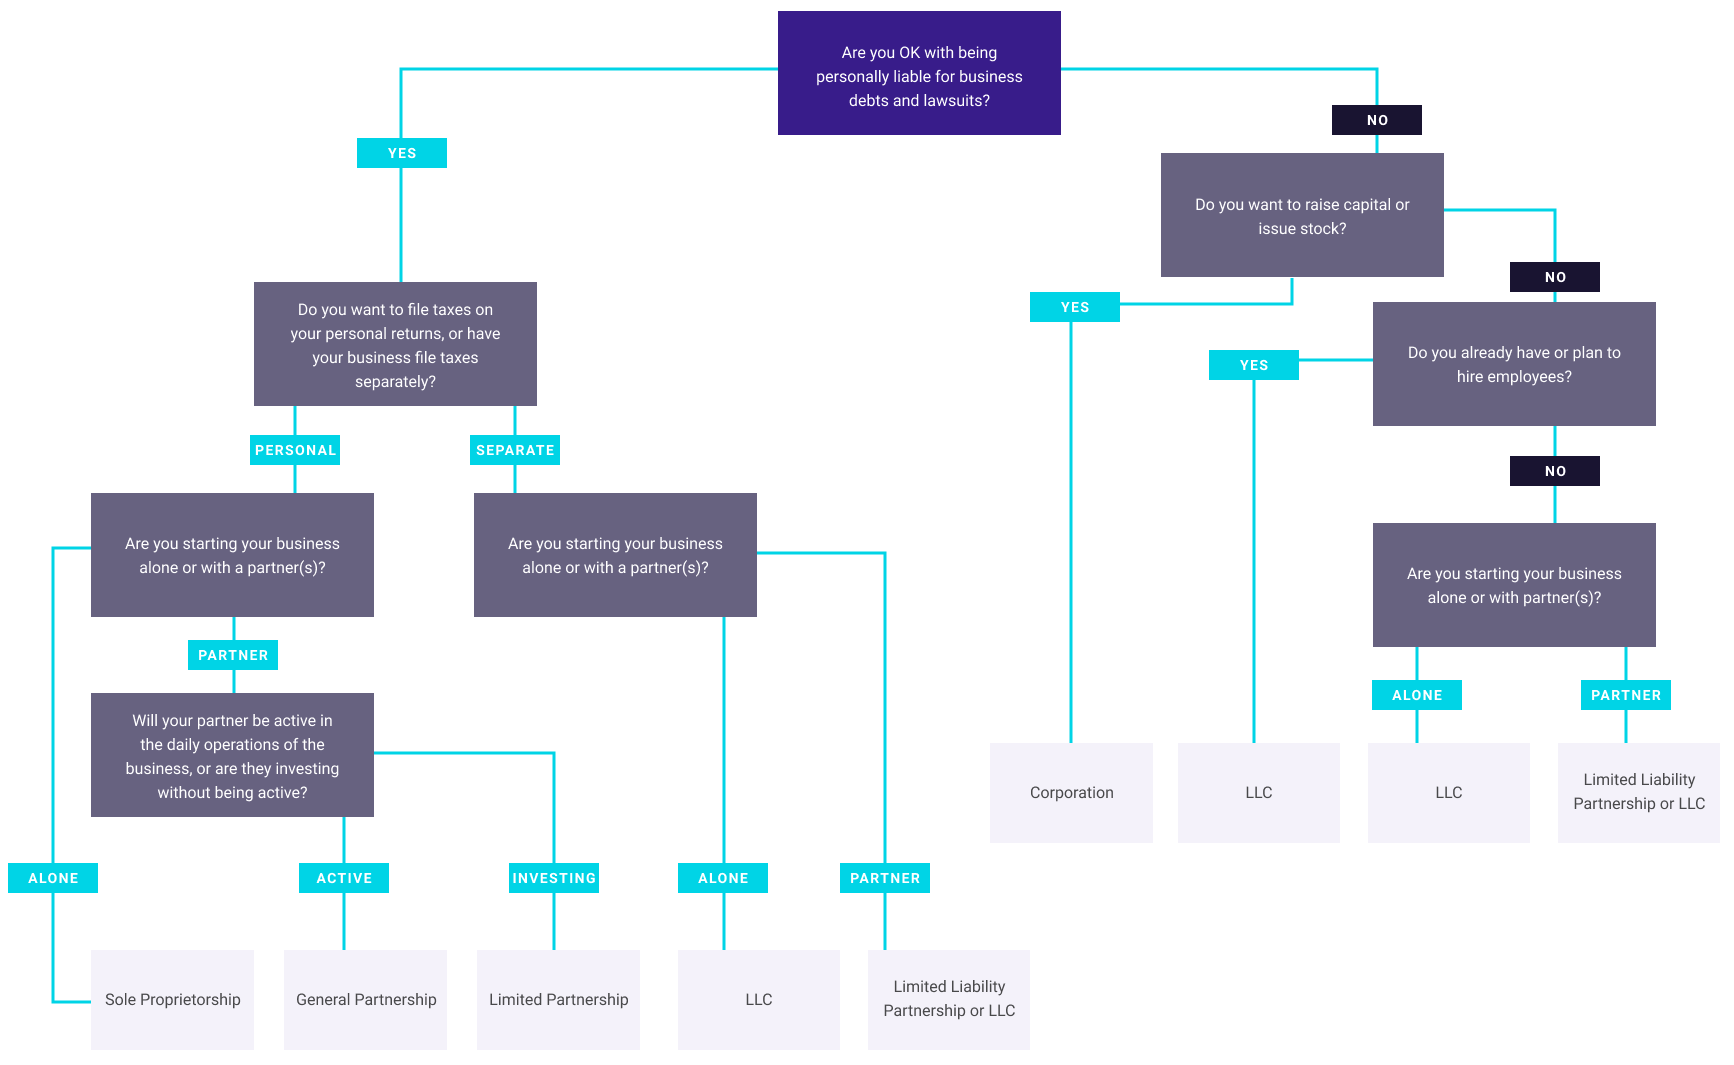 Flowchart demonstrating business structure decision-making.